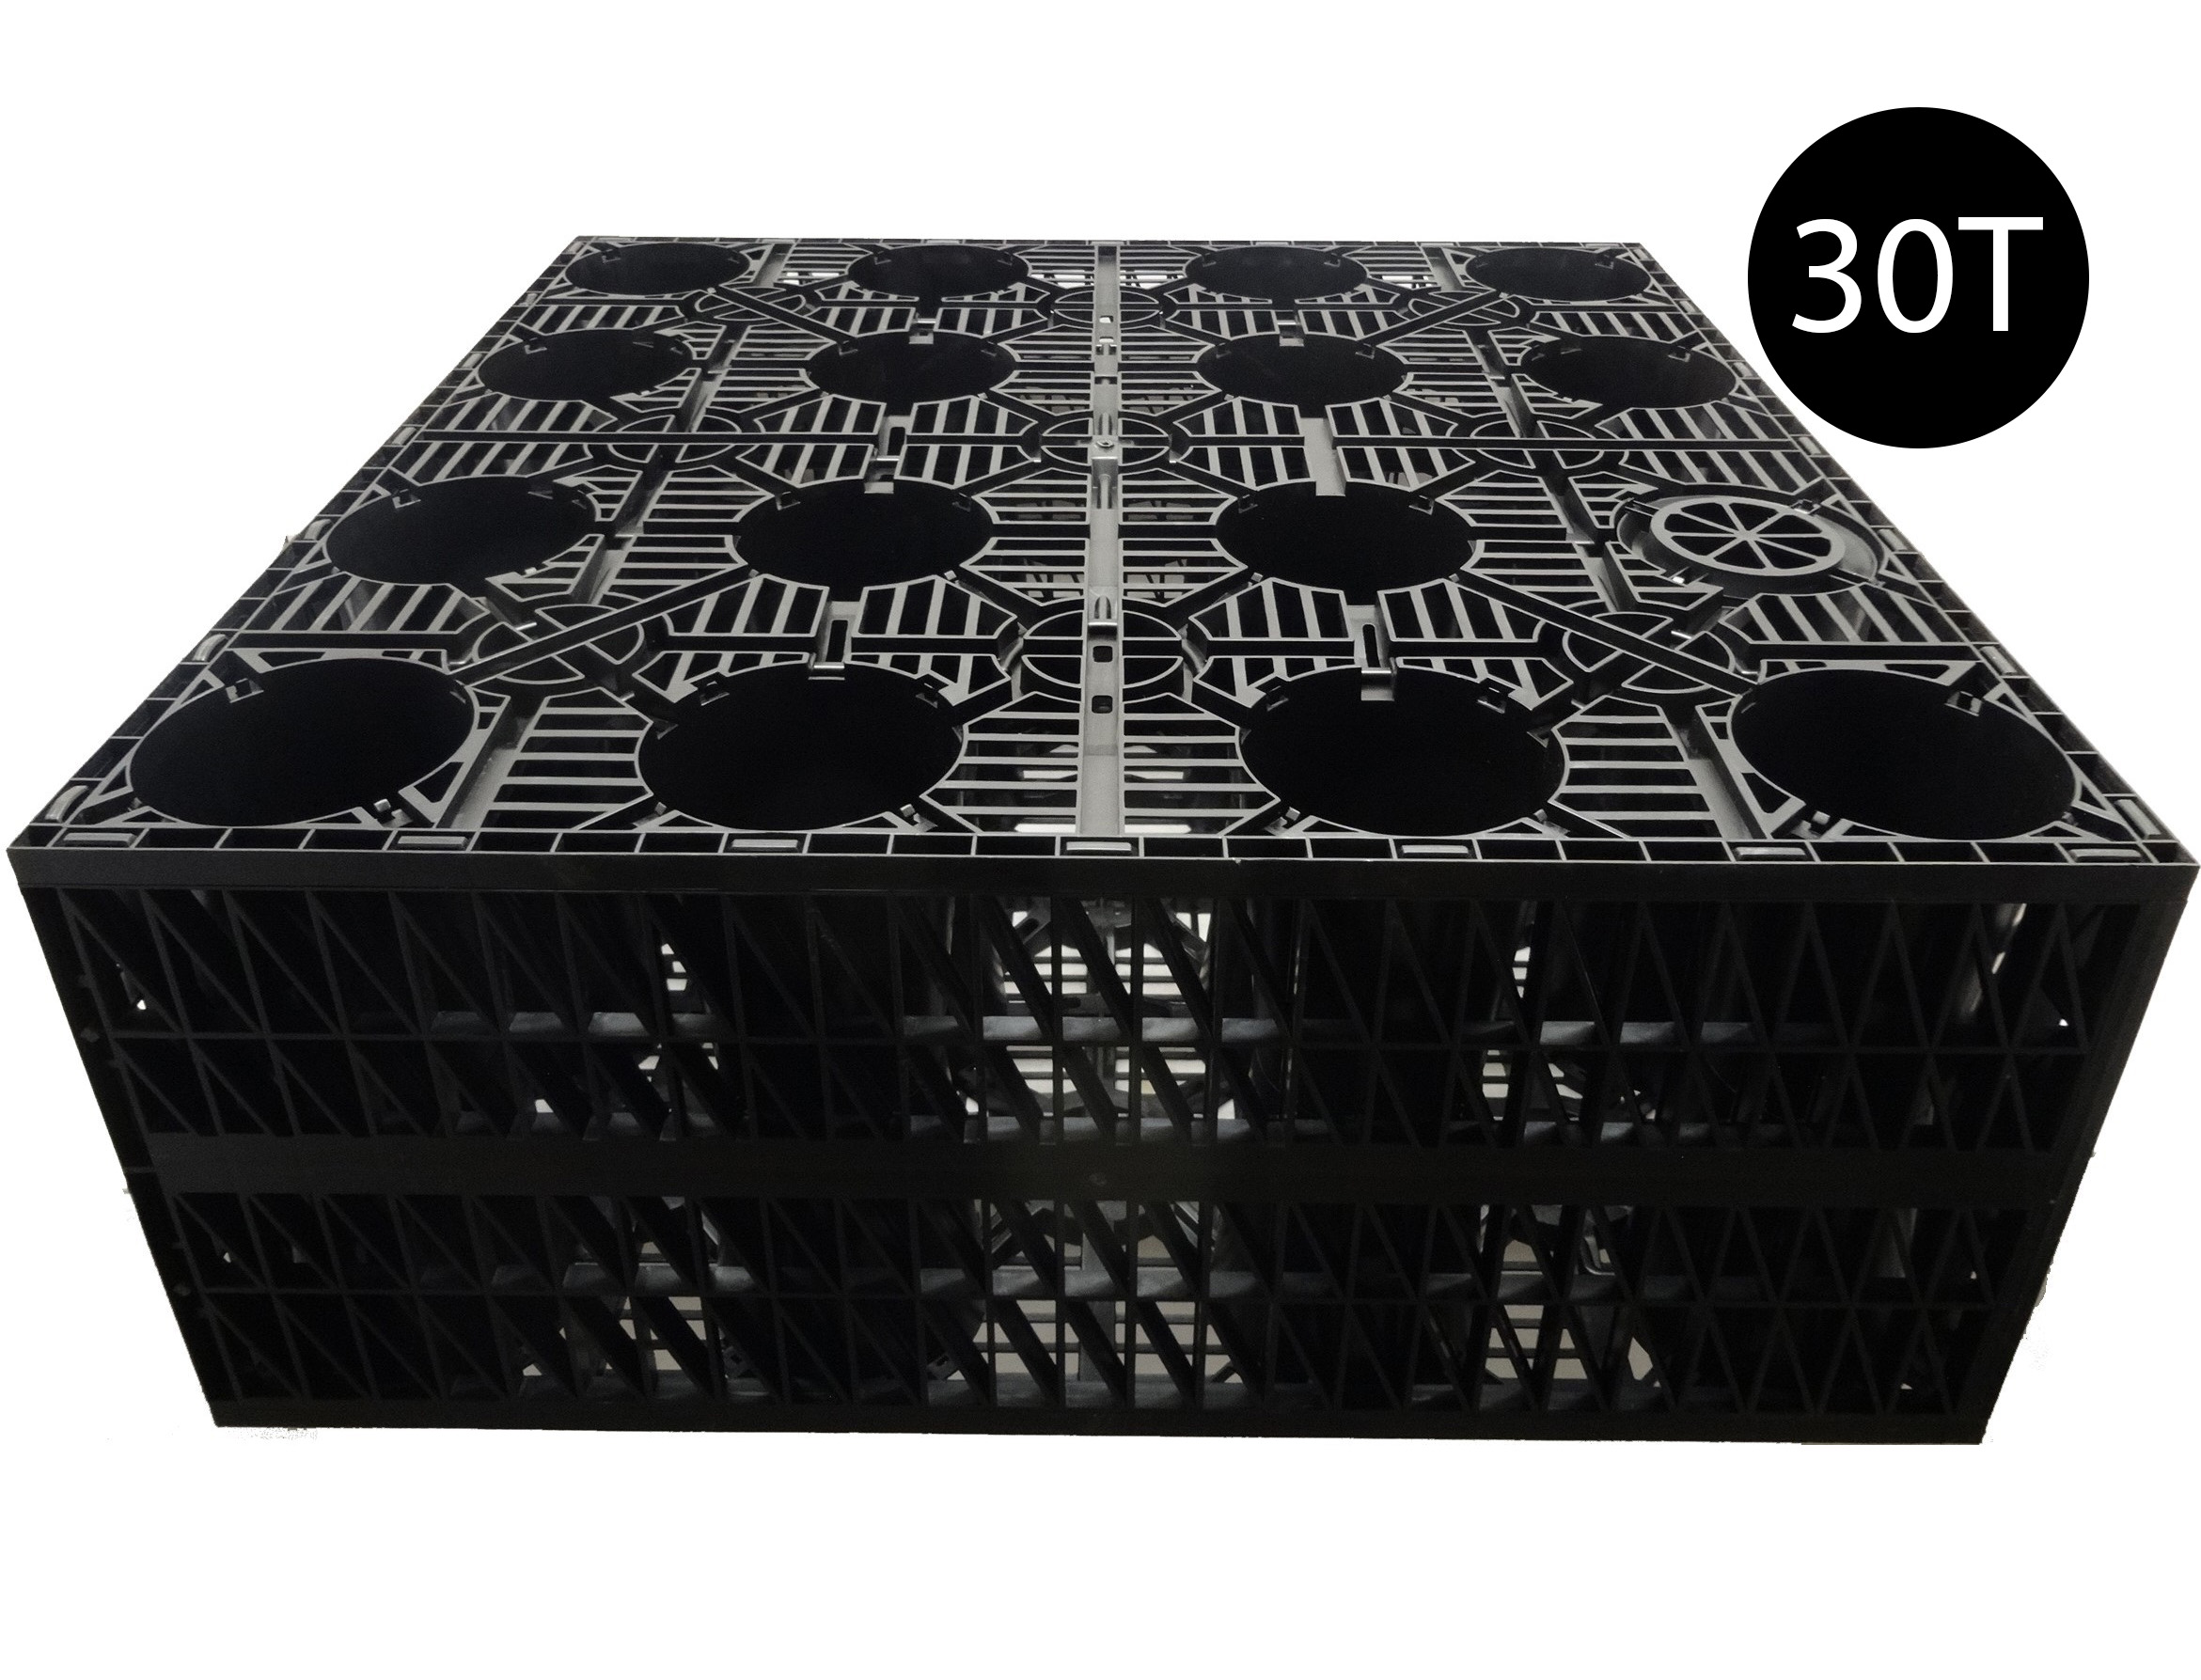 Pennine AquaCrate 410 (Deks Century100) Storm Attenuation Soakaway Crate (30T) - 1000x1000x400mm (0.4m3)